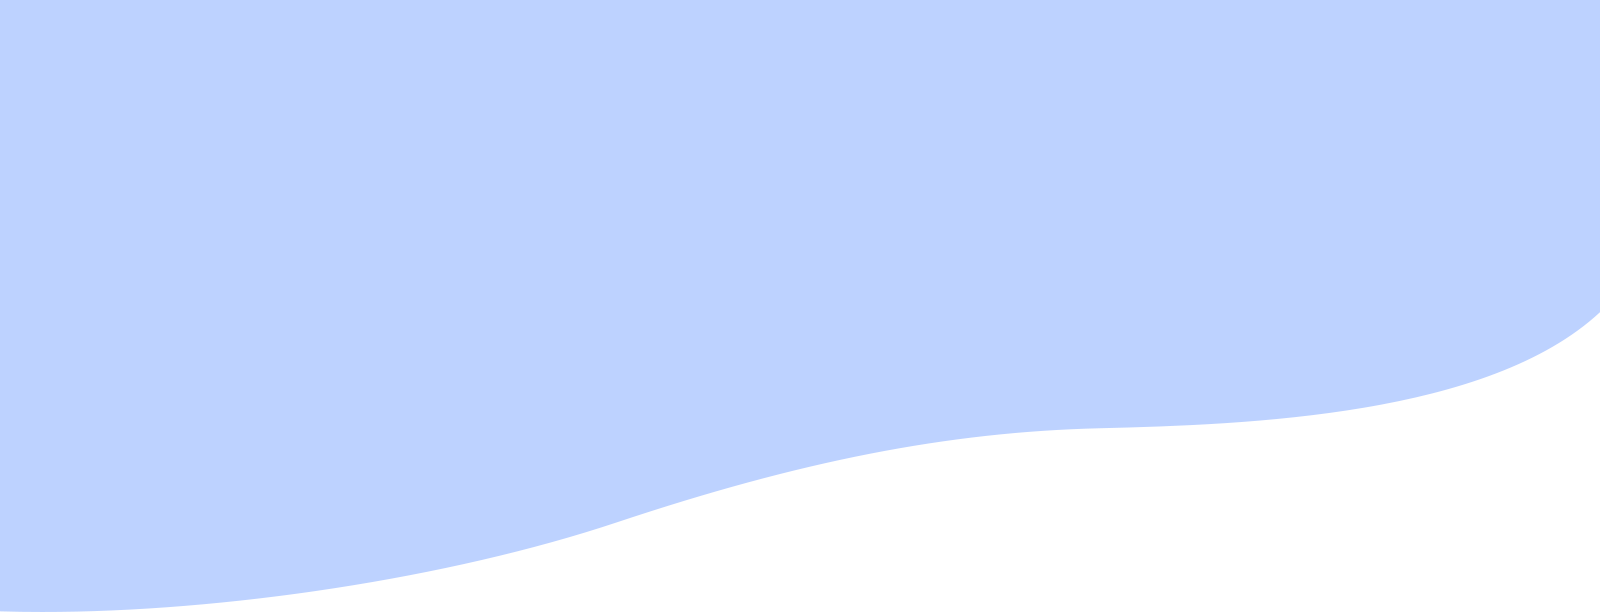 img/section-index-three-background.png